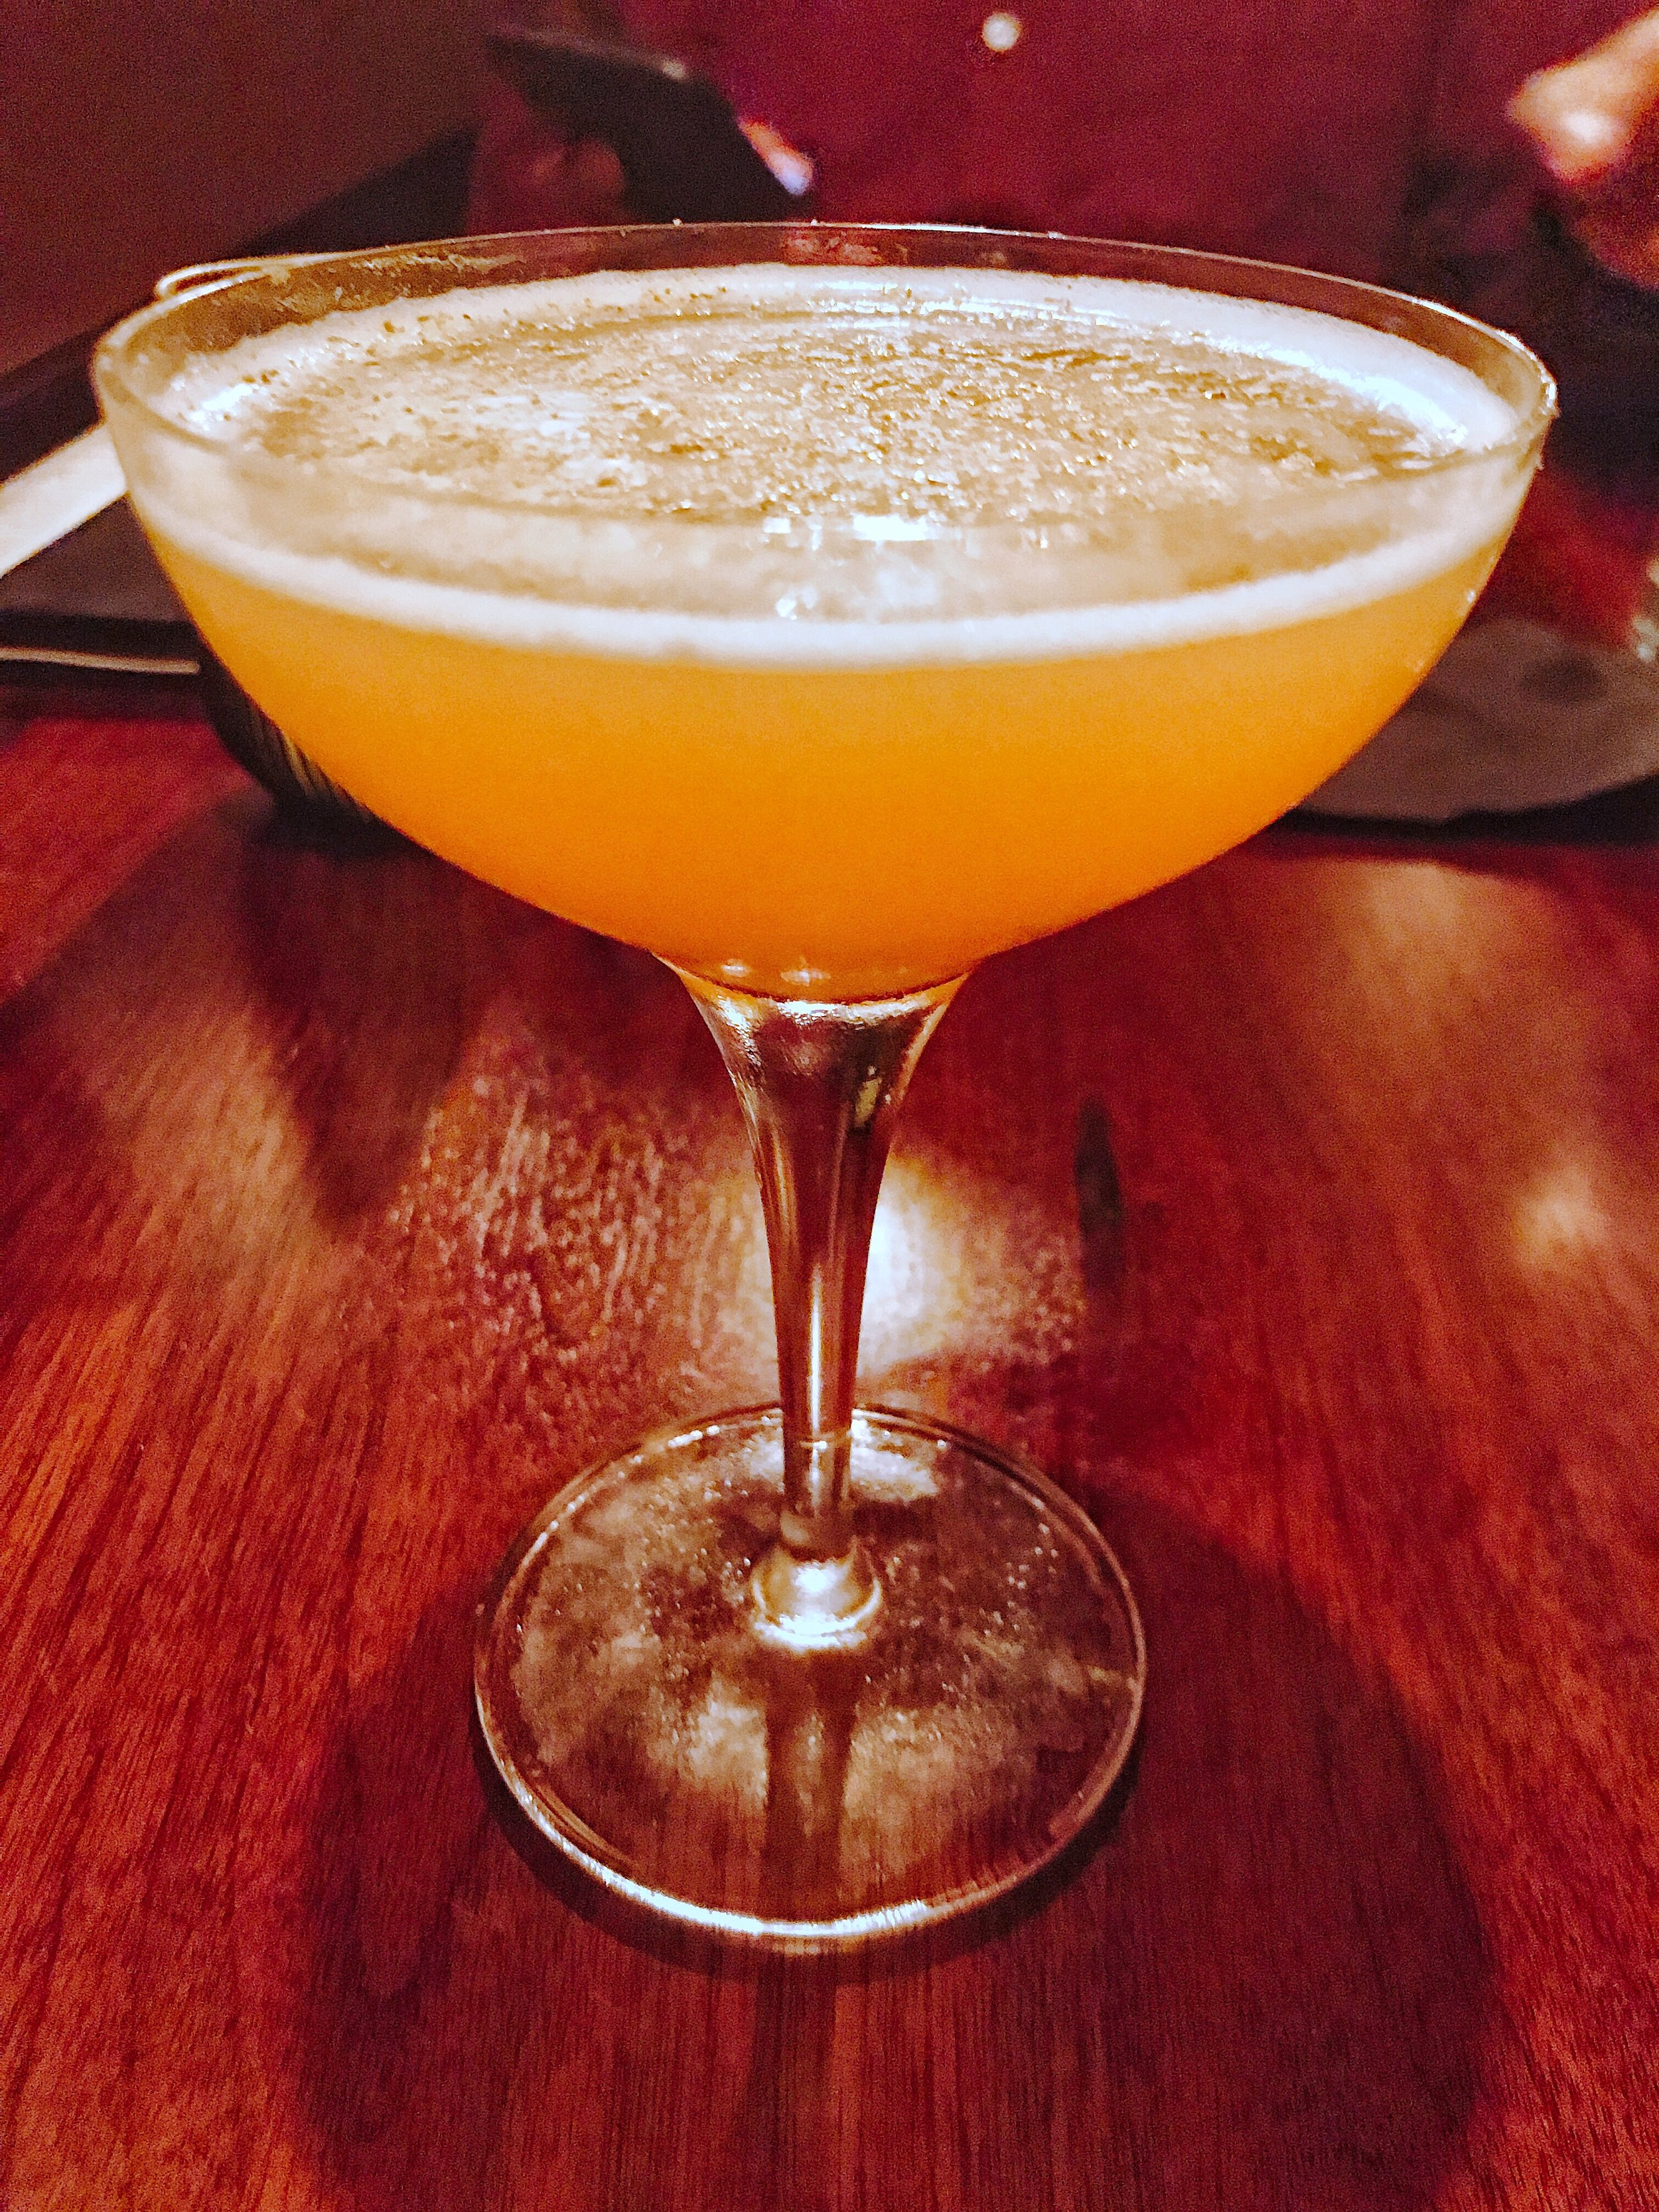 The Hildalgo Cocktail - Sailor Jerry Rum, orange curacao, lime juice, grilled pineapple, lemon bitters, nutmeg. A really tasty drink flavor wise. The pineapple comes through well so this is a great drink for those who want a drink on the fruity side. If you are a grilled pineapple fan, definitely try this drink. This drink just screams citrus & breach weather to help up keep the cold weather at bay(stay away fall)!